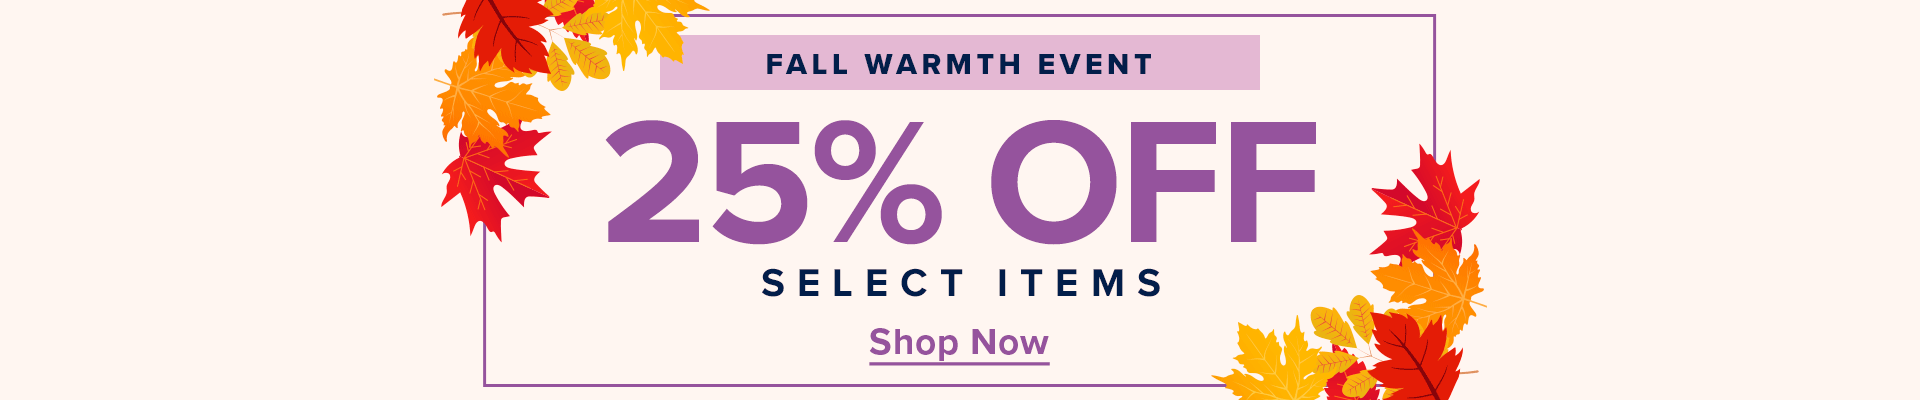 Fall Warmth Event - 25% Off Select Items